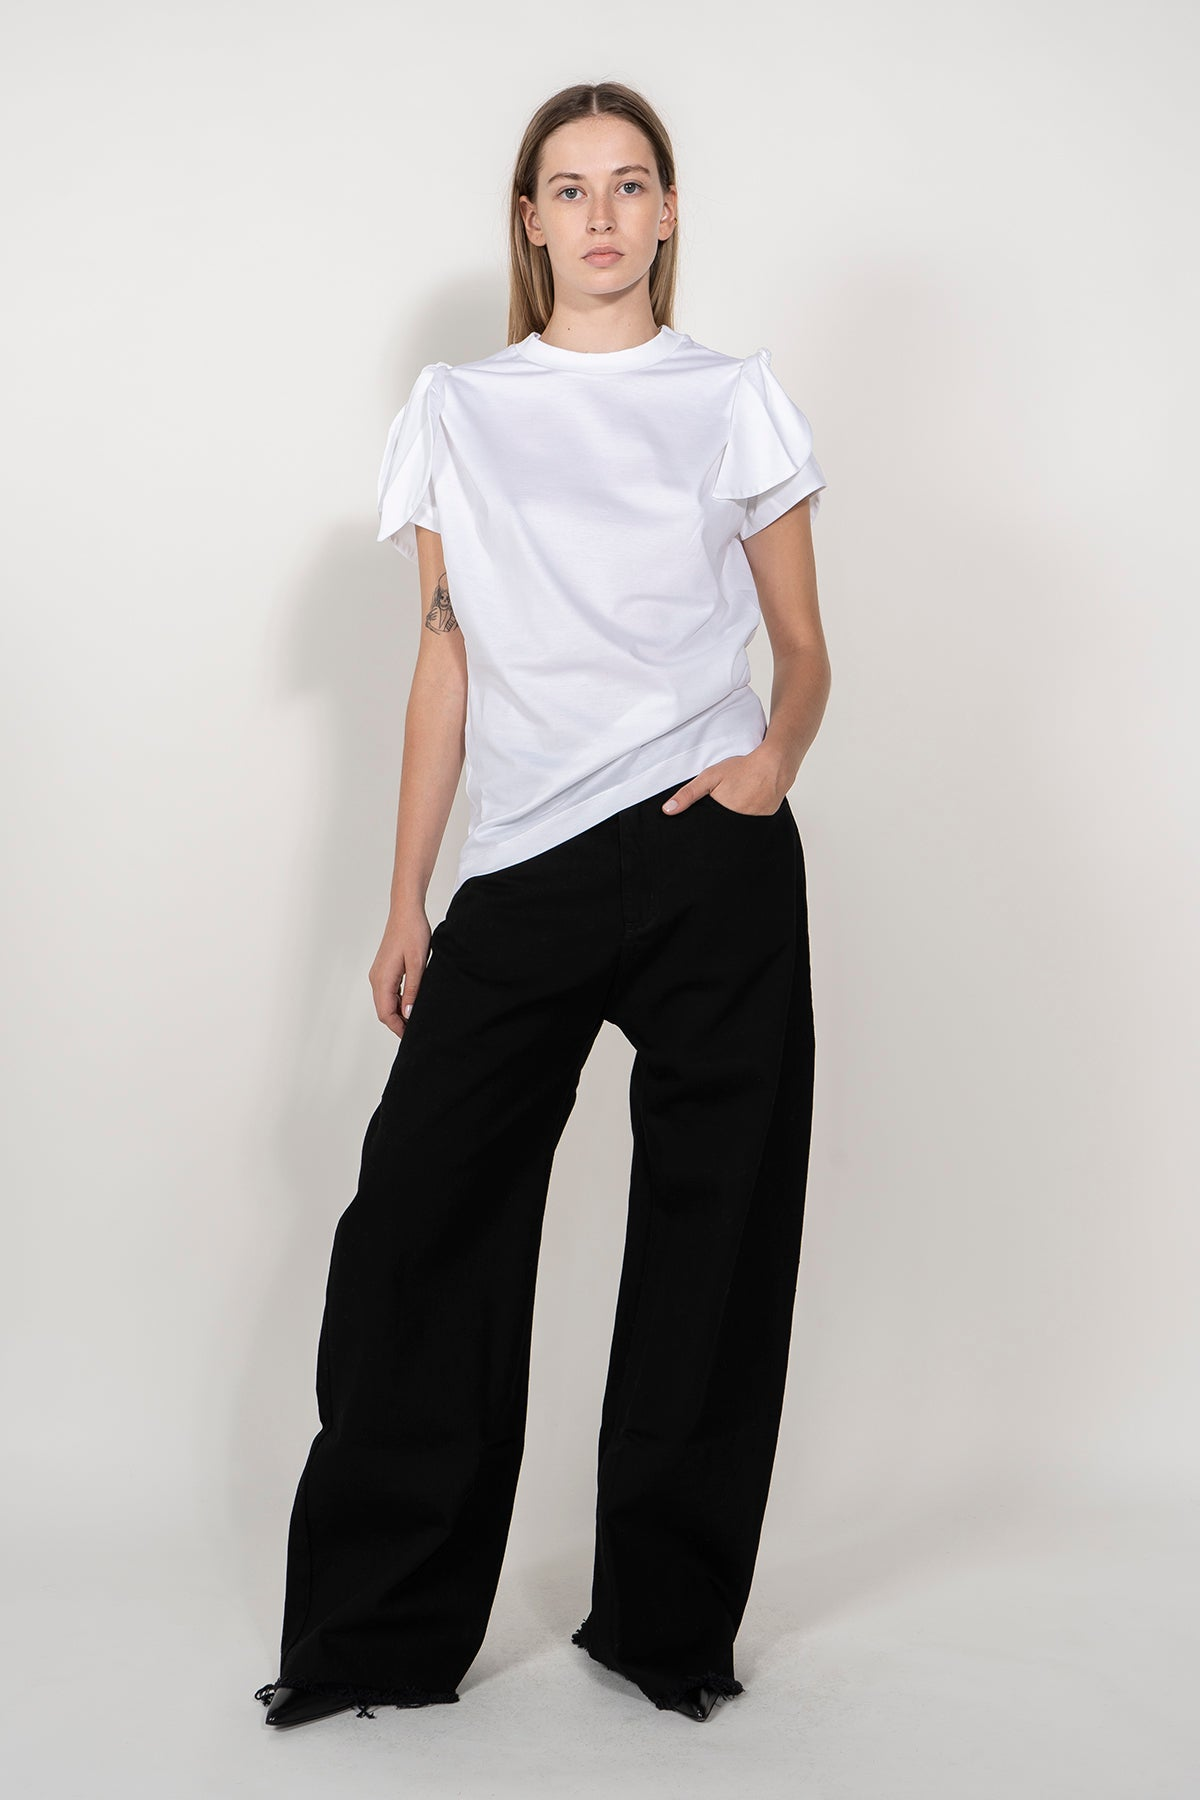 KNOT SLEEVE T-SHIRT marques almeida